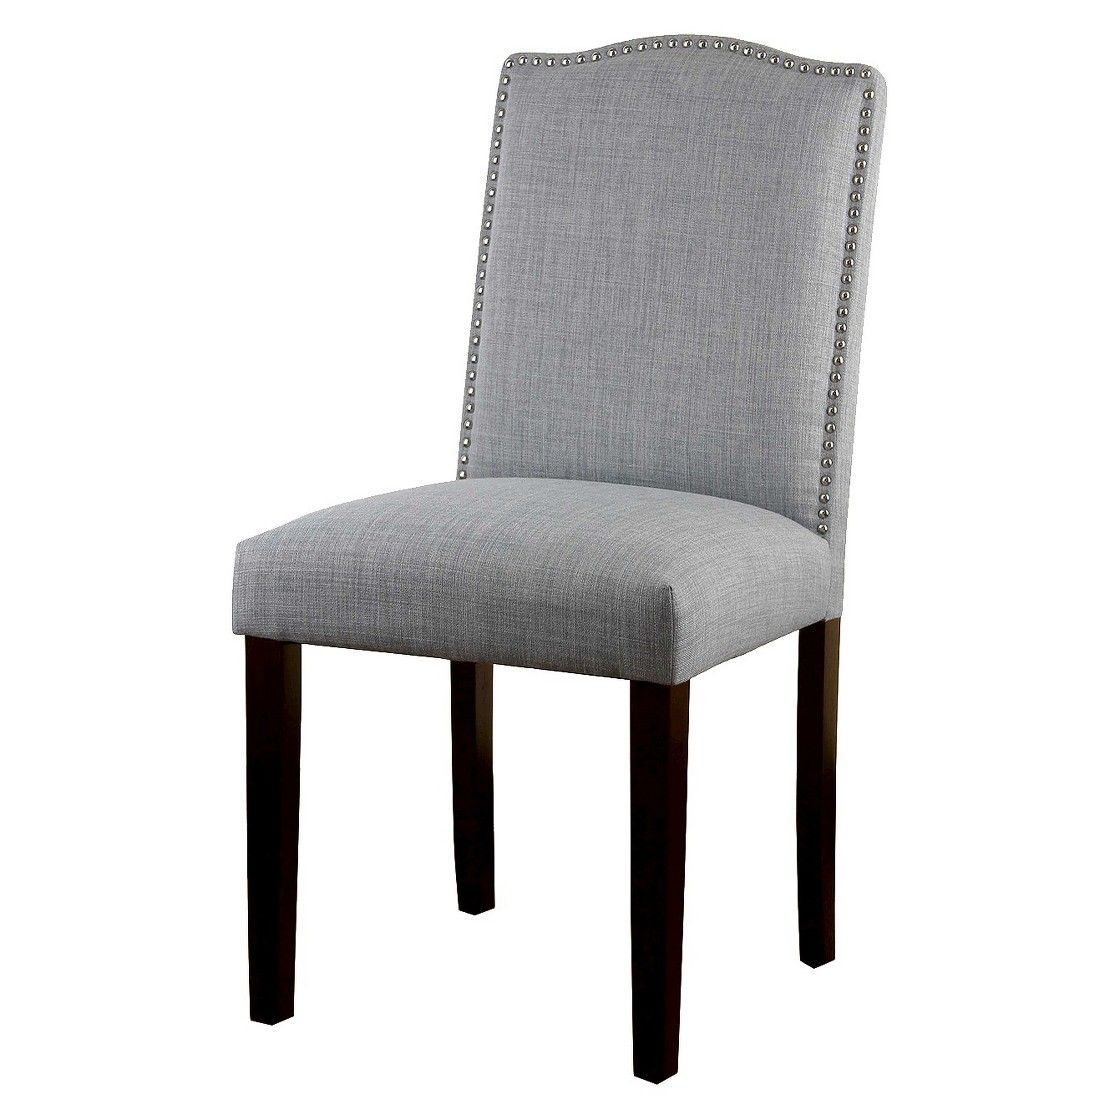 Threshold Camelot Nailhead Dining Chair Dove Gray 1 Pack